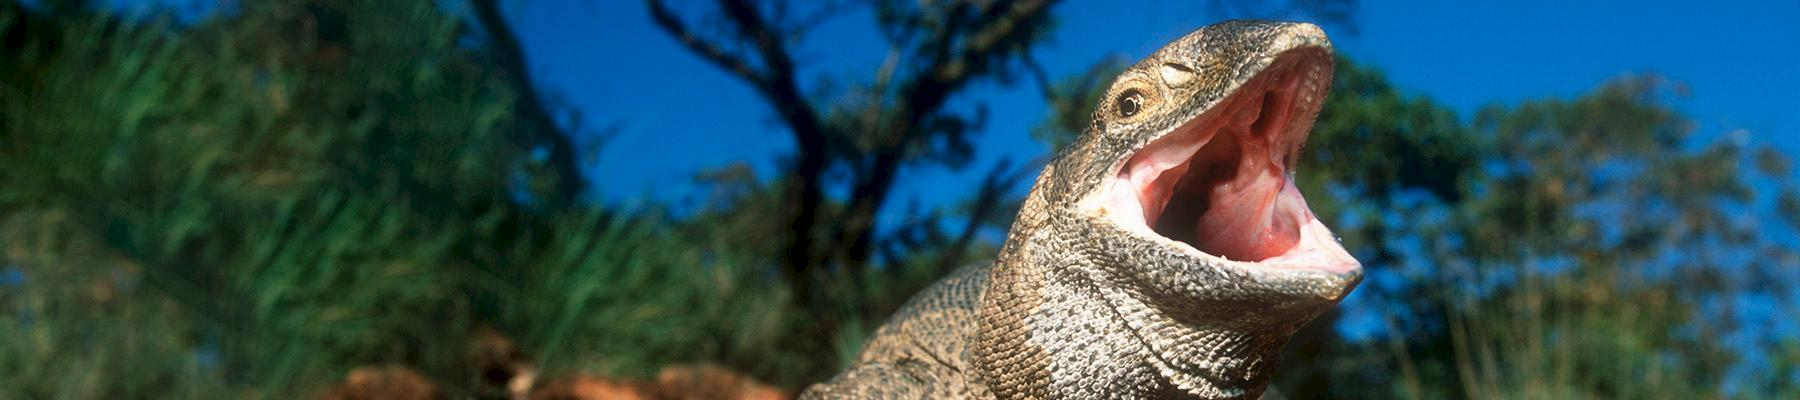 Savannah monitor Varanus exanthematicus, a CITES-listed species imported into the EU © Martin Harvey / WWF